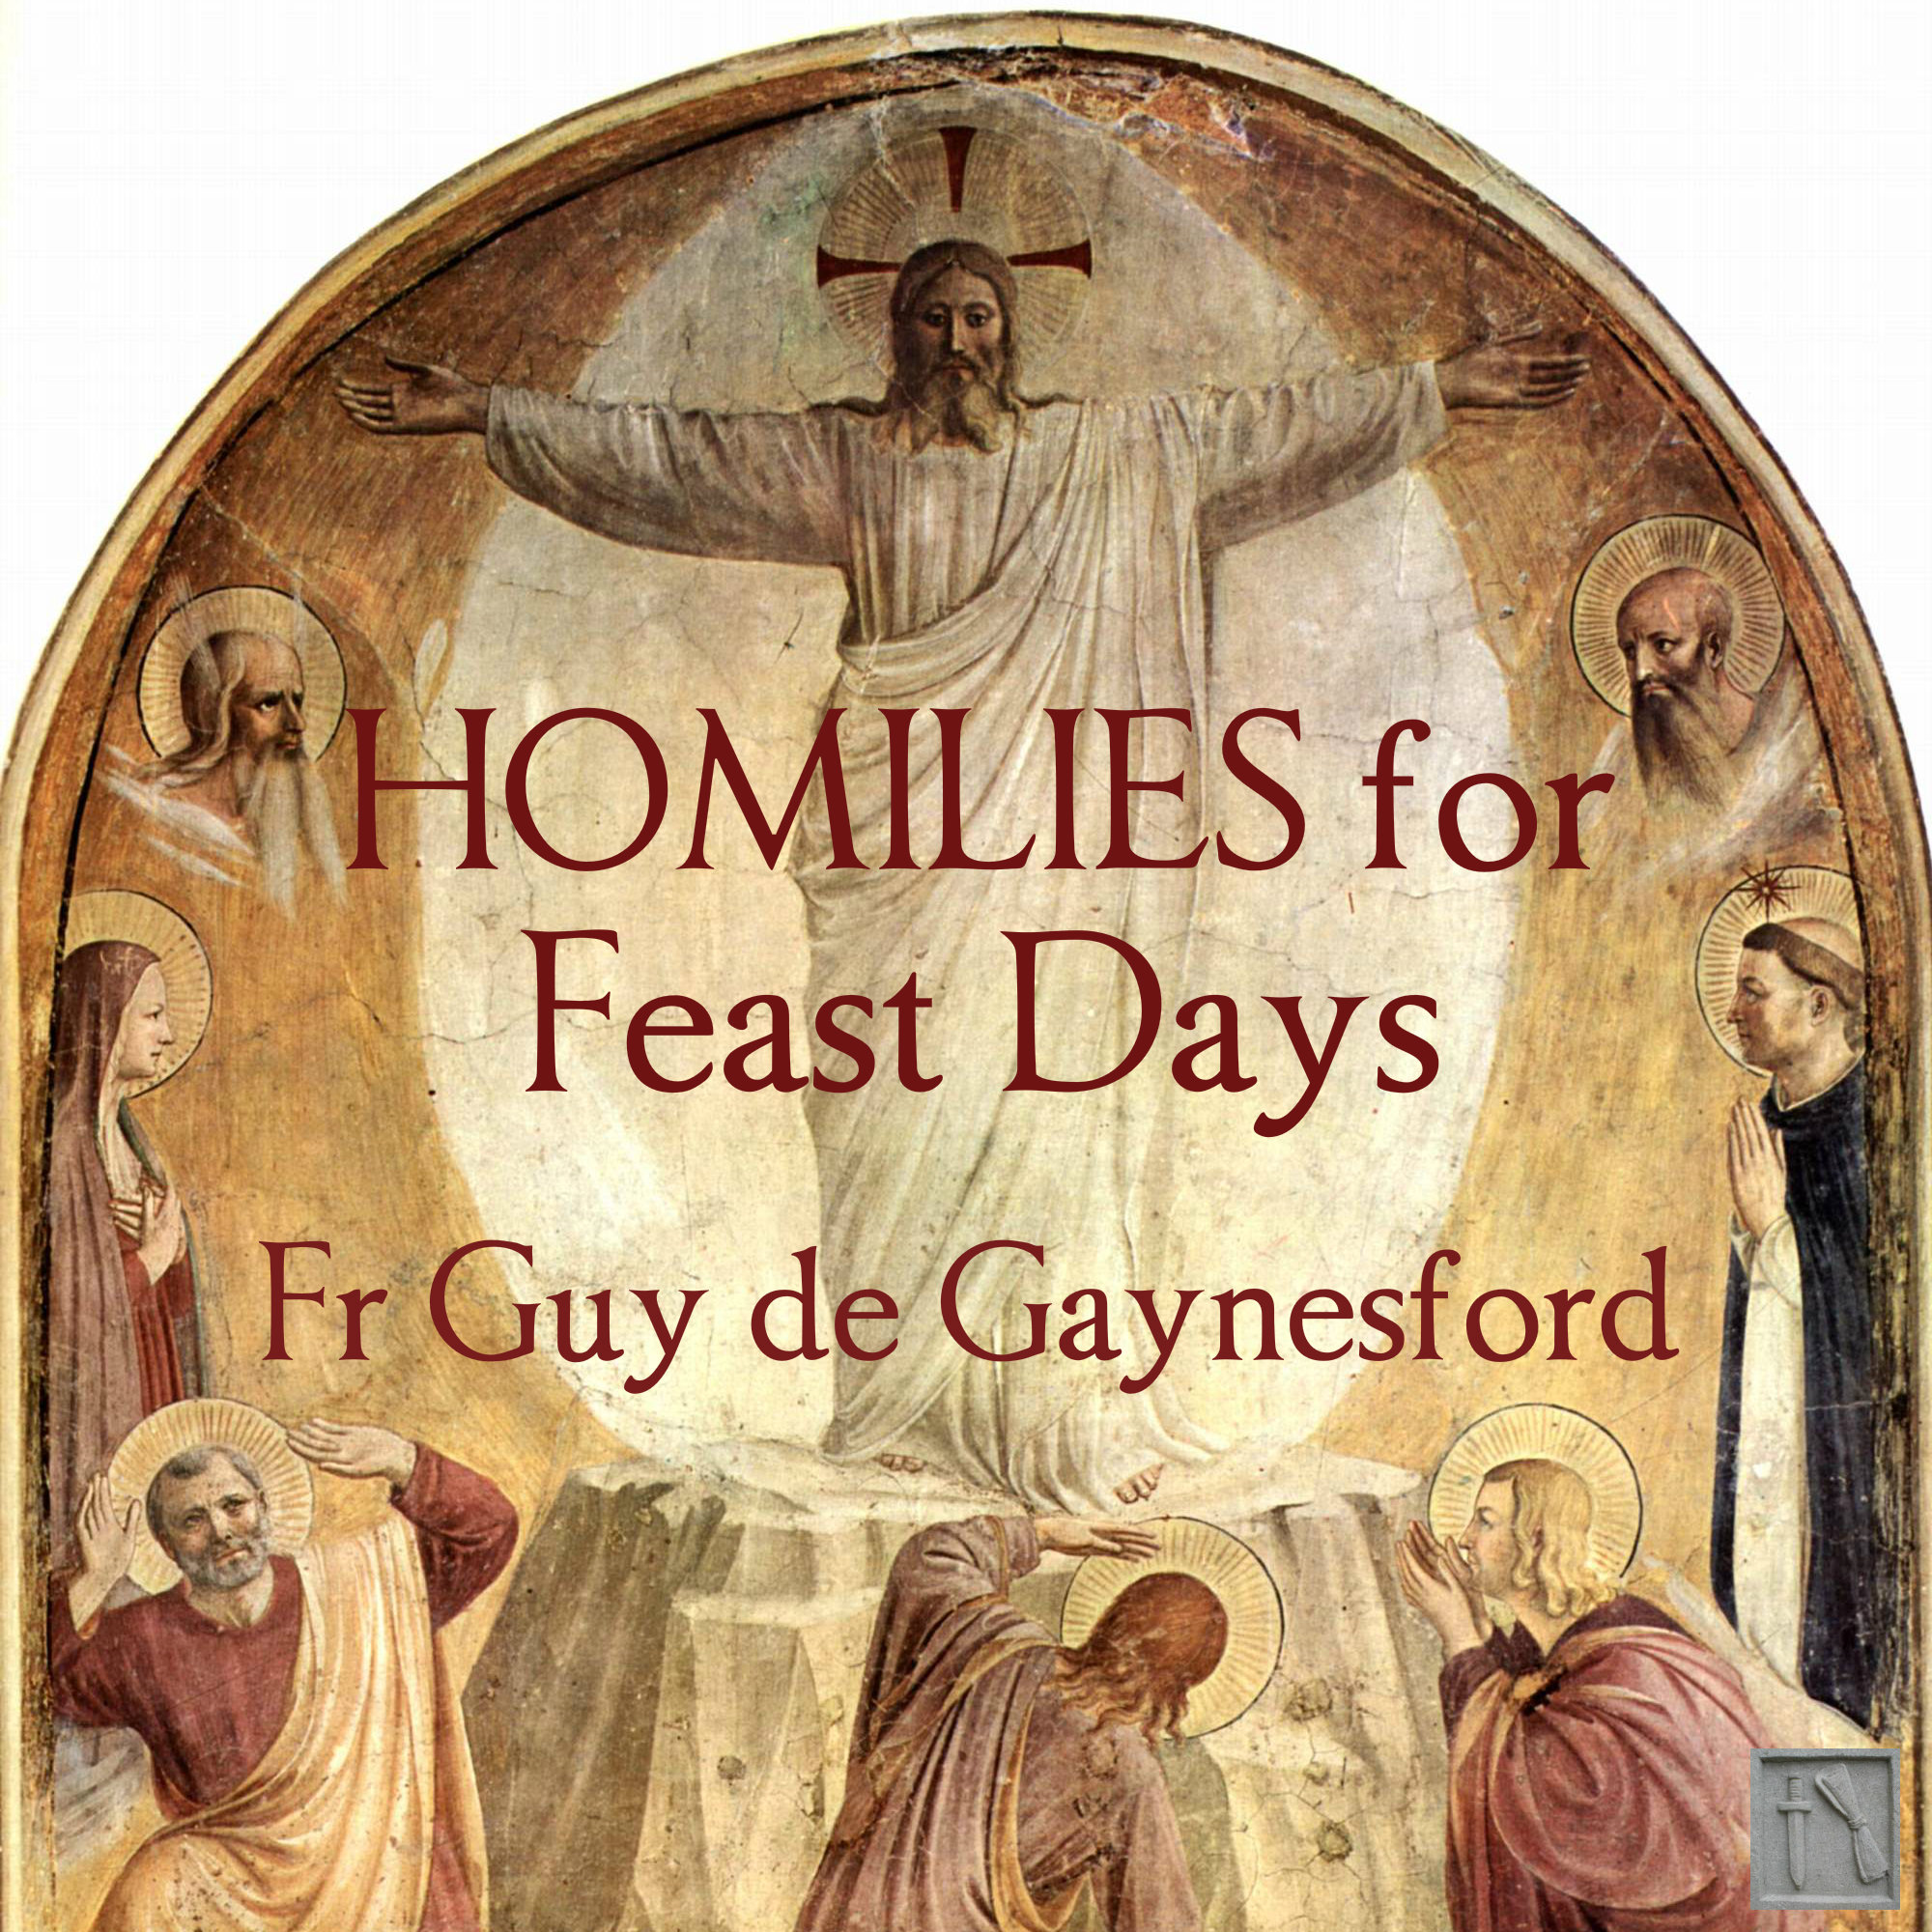 Homilies for Feast Days – ST PAUL REPOSITORY